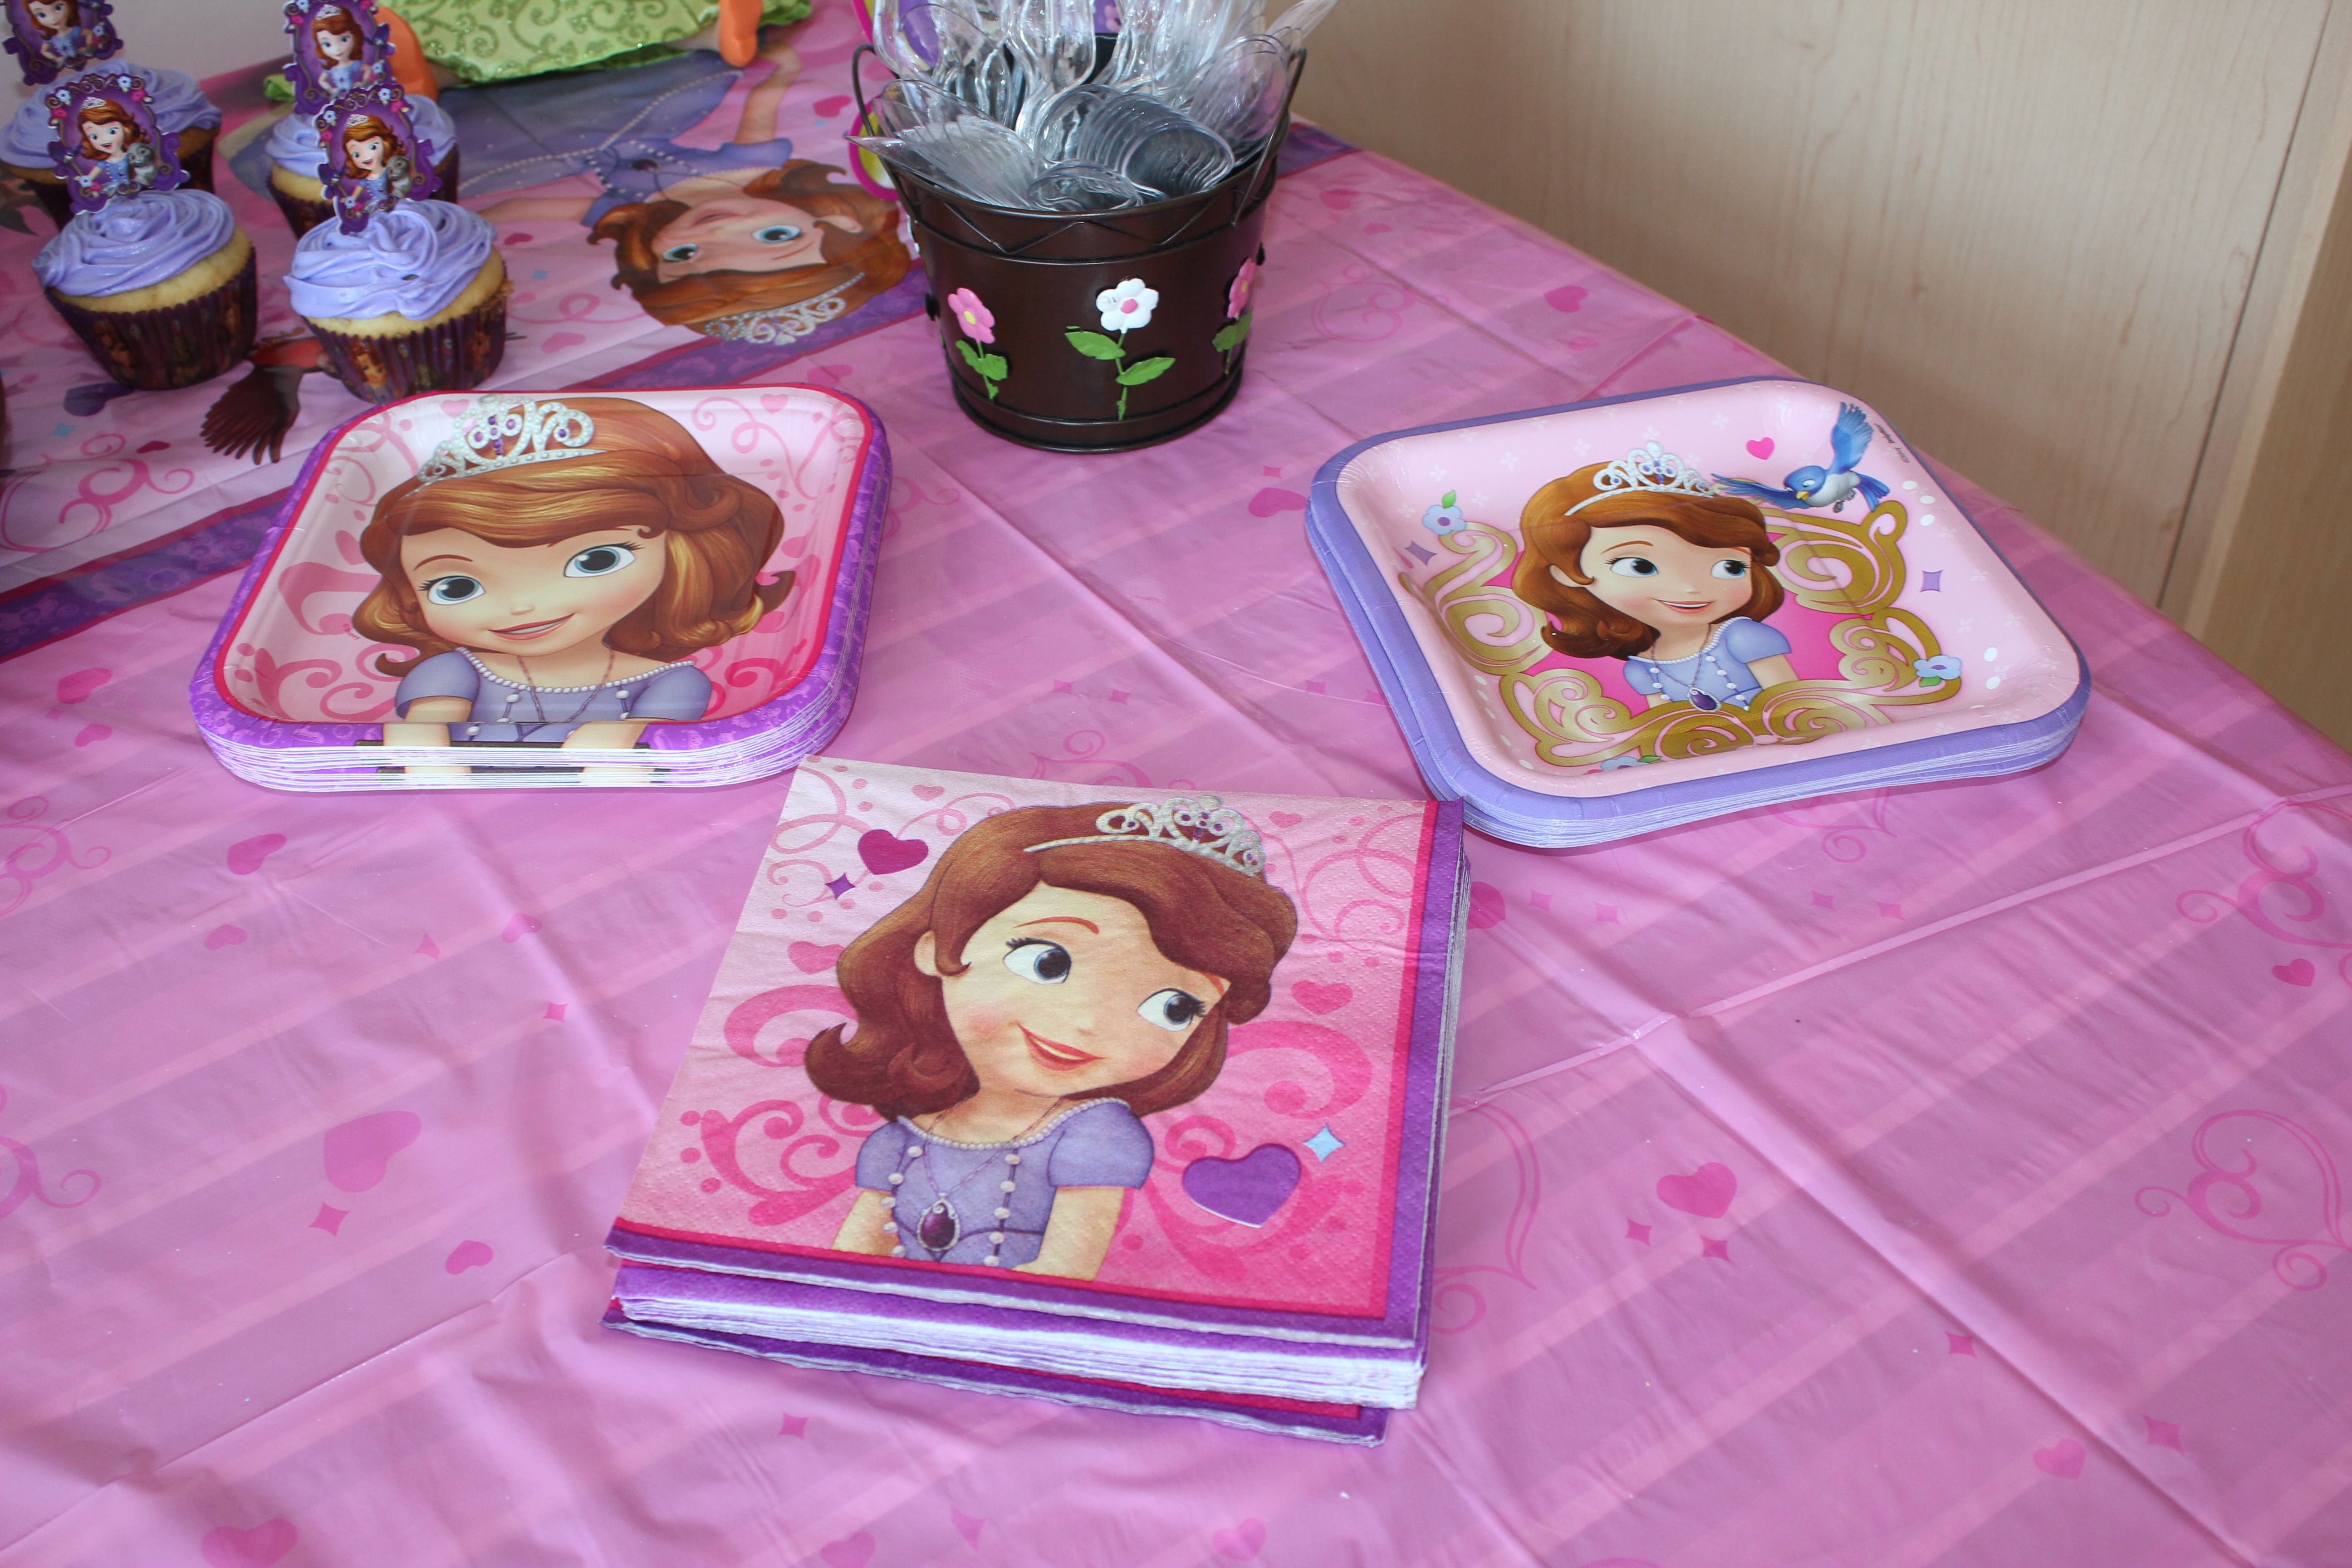 Sofia the First Napkins u0026 Paper Plates from Party City & Sofia the First Napkins u0026 Paper Plates from Party City | Sofia the ...